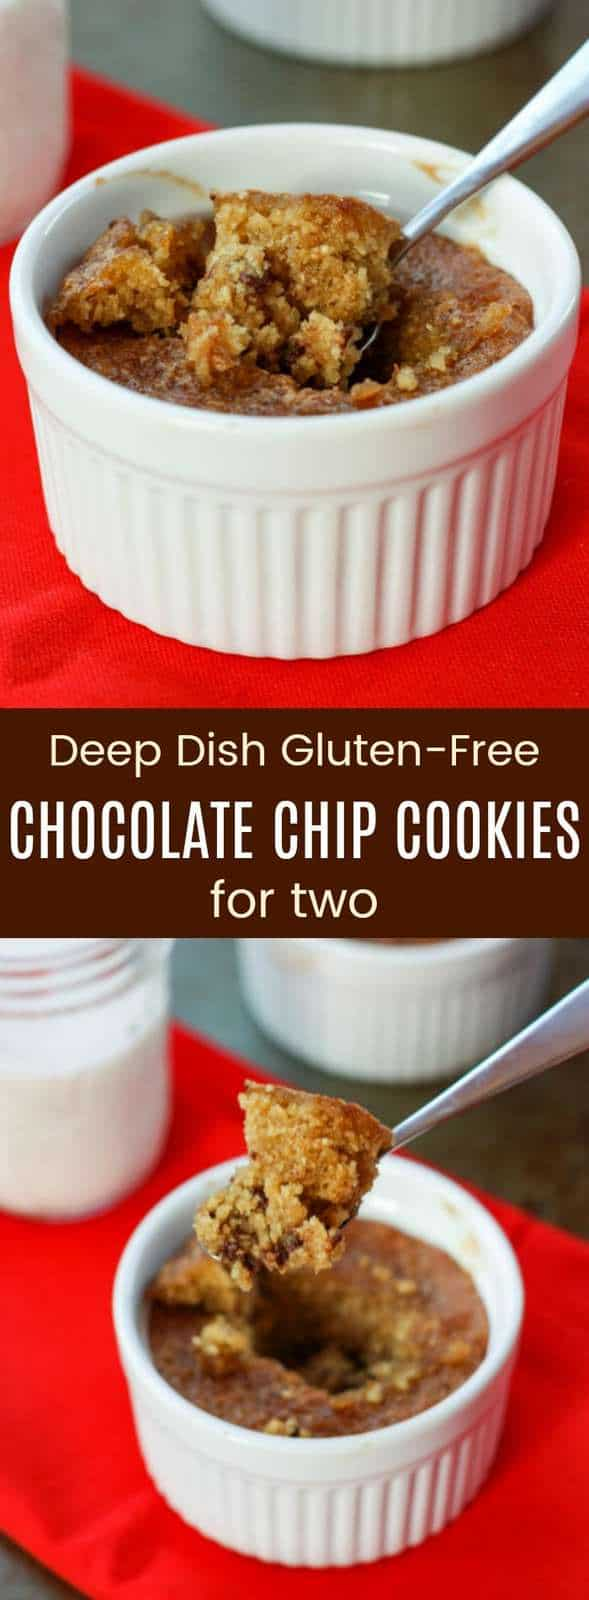 Deep Dish Gluten-Free Chocolate Chip Cookies for Two Recipe from Cupcakes and Kale Chips